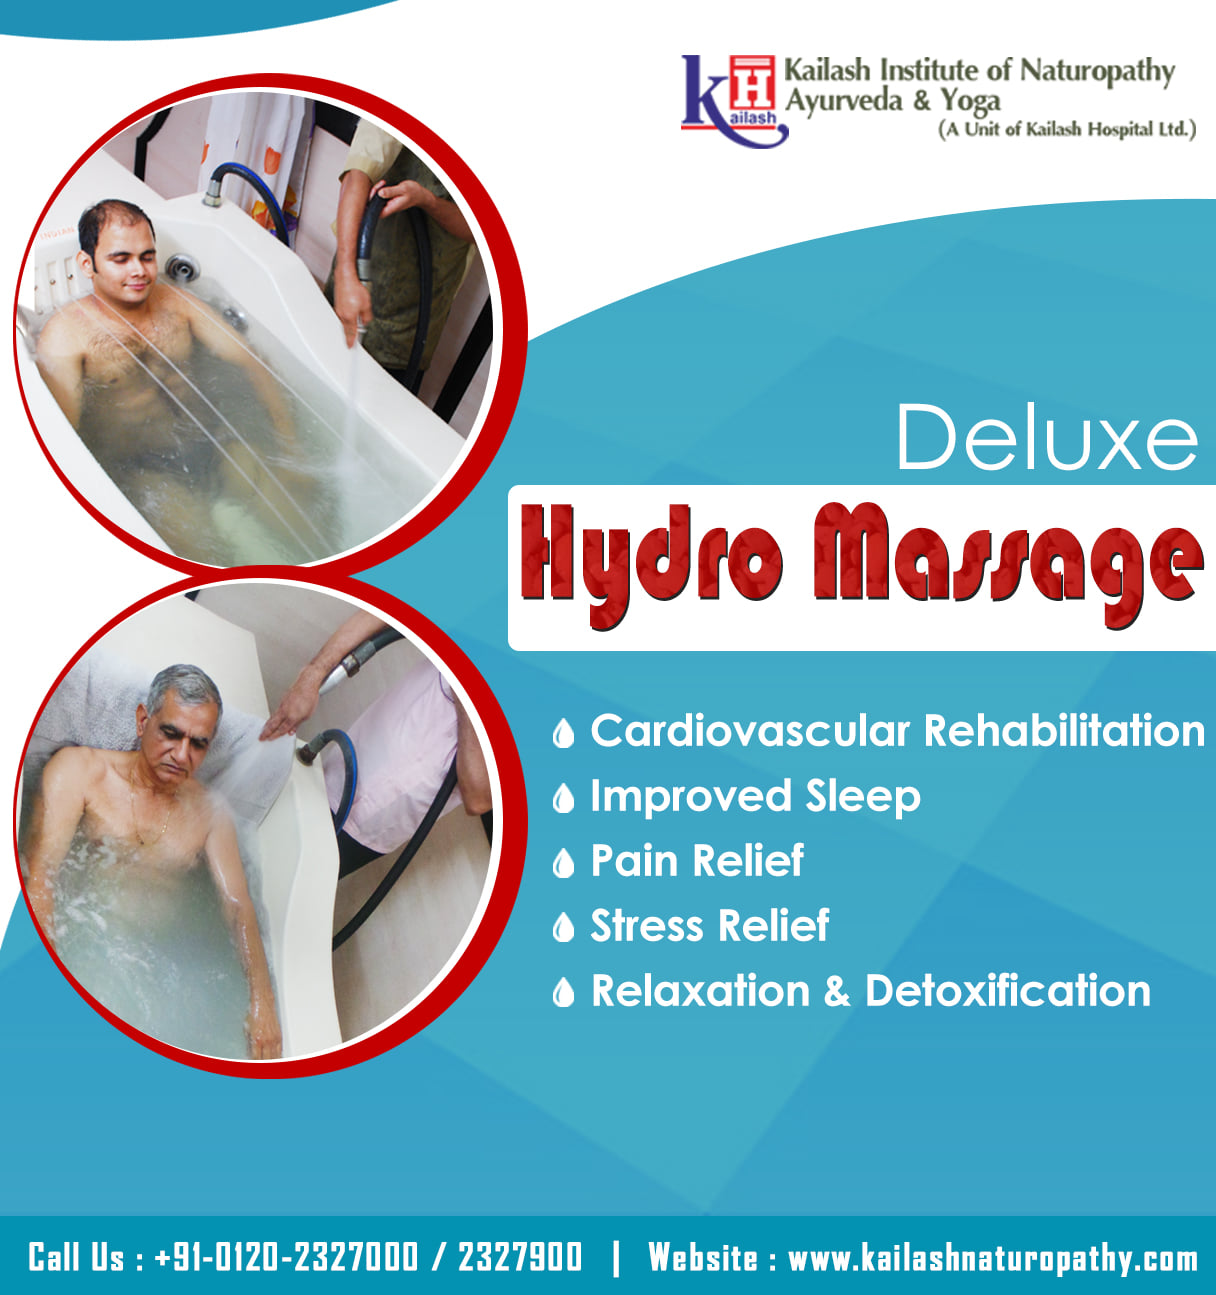 Get Naturopathy Deluxe Hydromassage for Cardiovascular Rehabilitation, Pain & Stress Relief at KINAY.